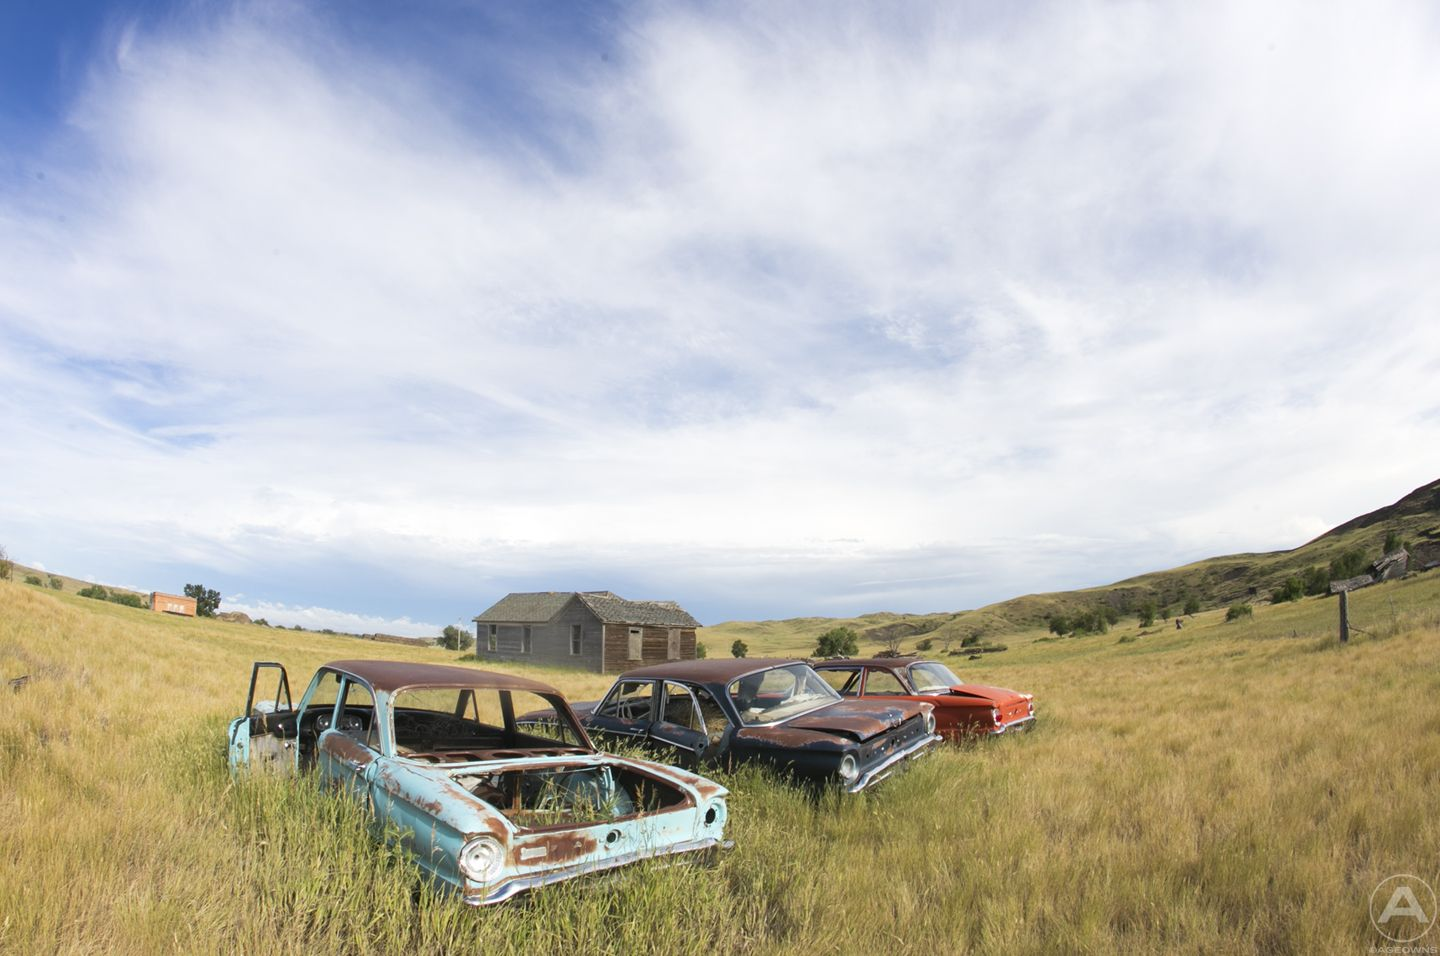 Abandoned Cars Vehicles Urban Architecture Leave Behind South Dakota Ghost